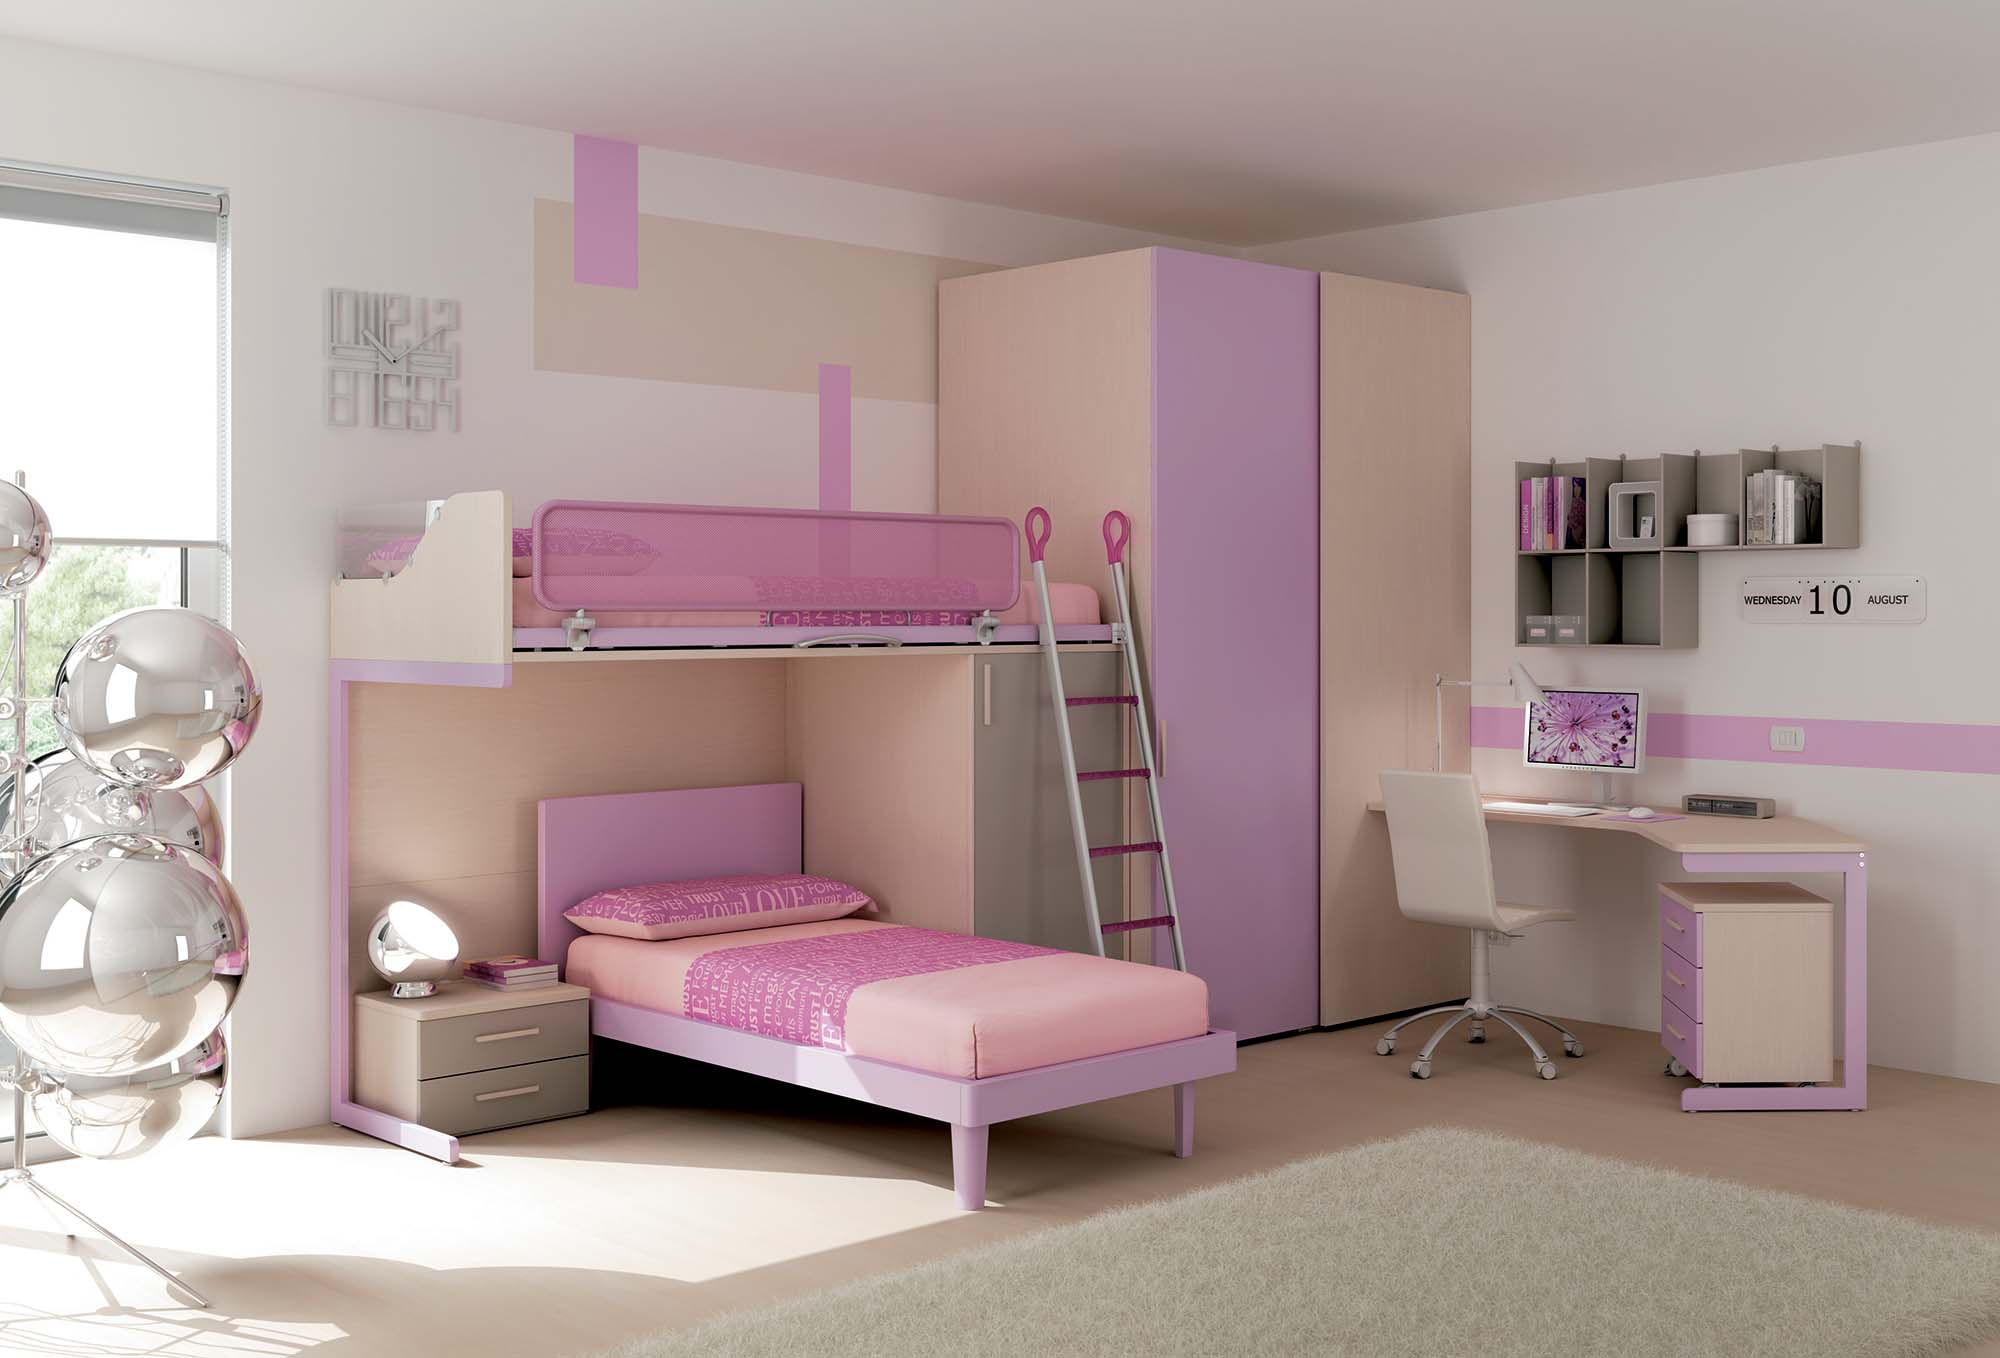 Chambre fille lit superpose tunisie for Chambre avec lit superpose